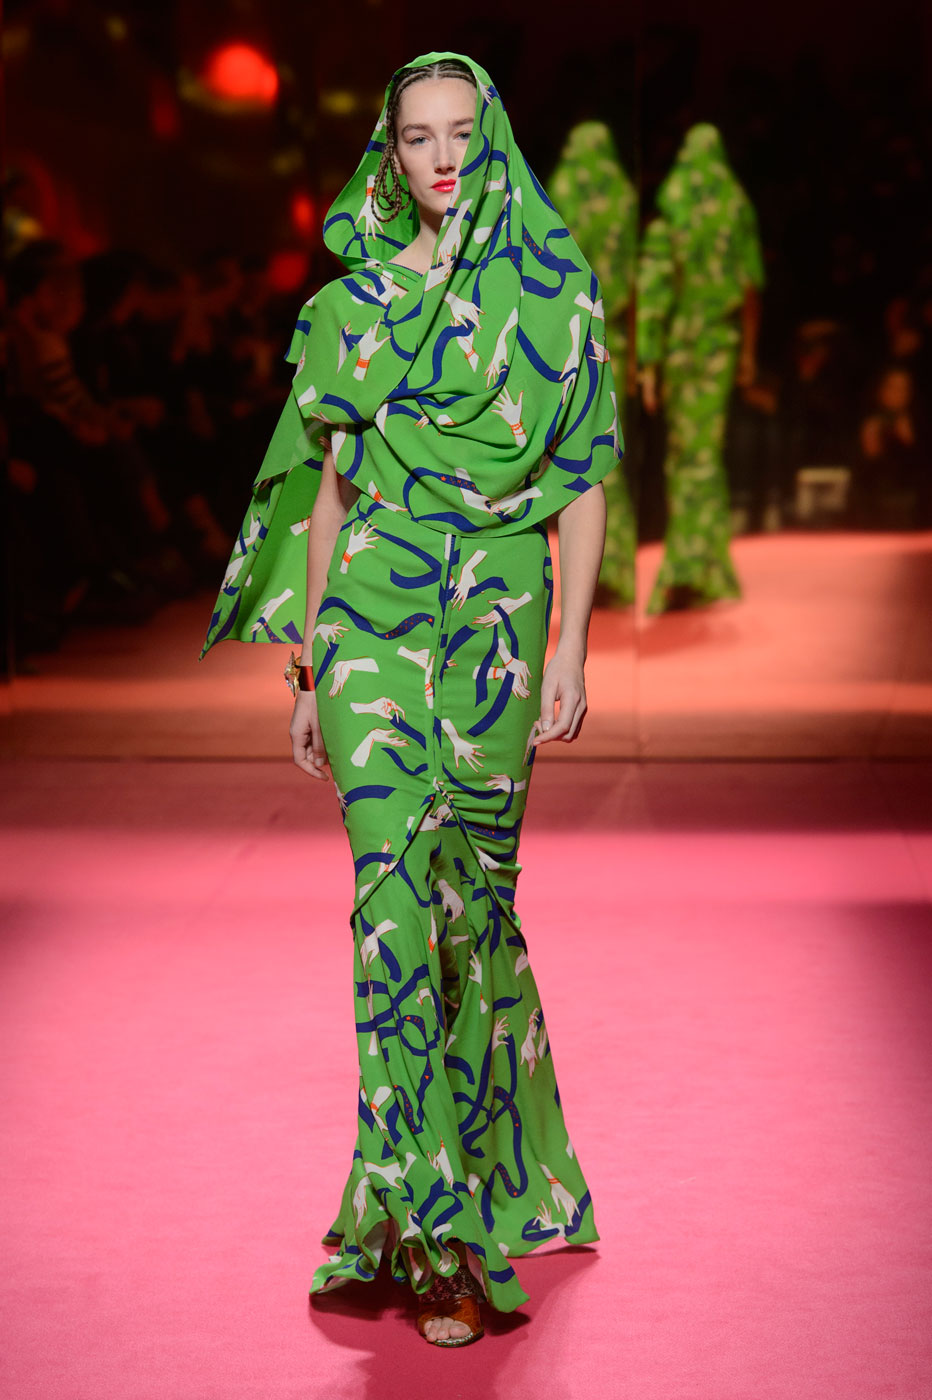 Schiaparelli-fashion-runway-show-haute-couture-paris-spring-summer-2015-the-impression-38